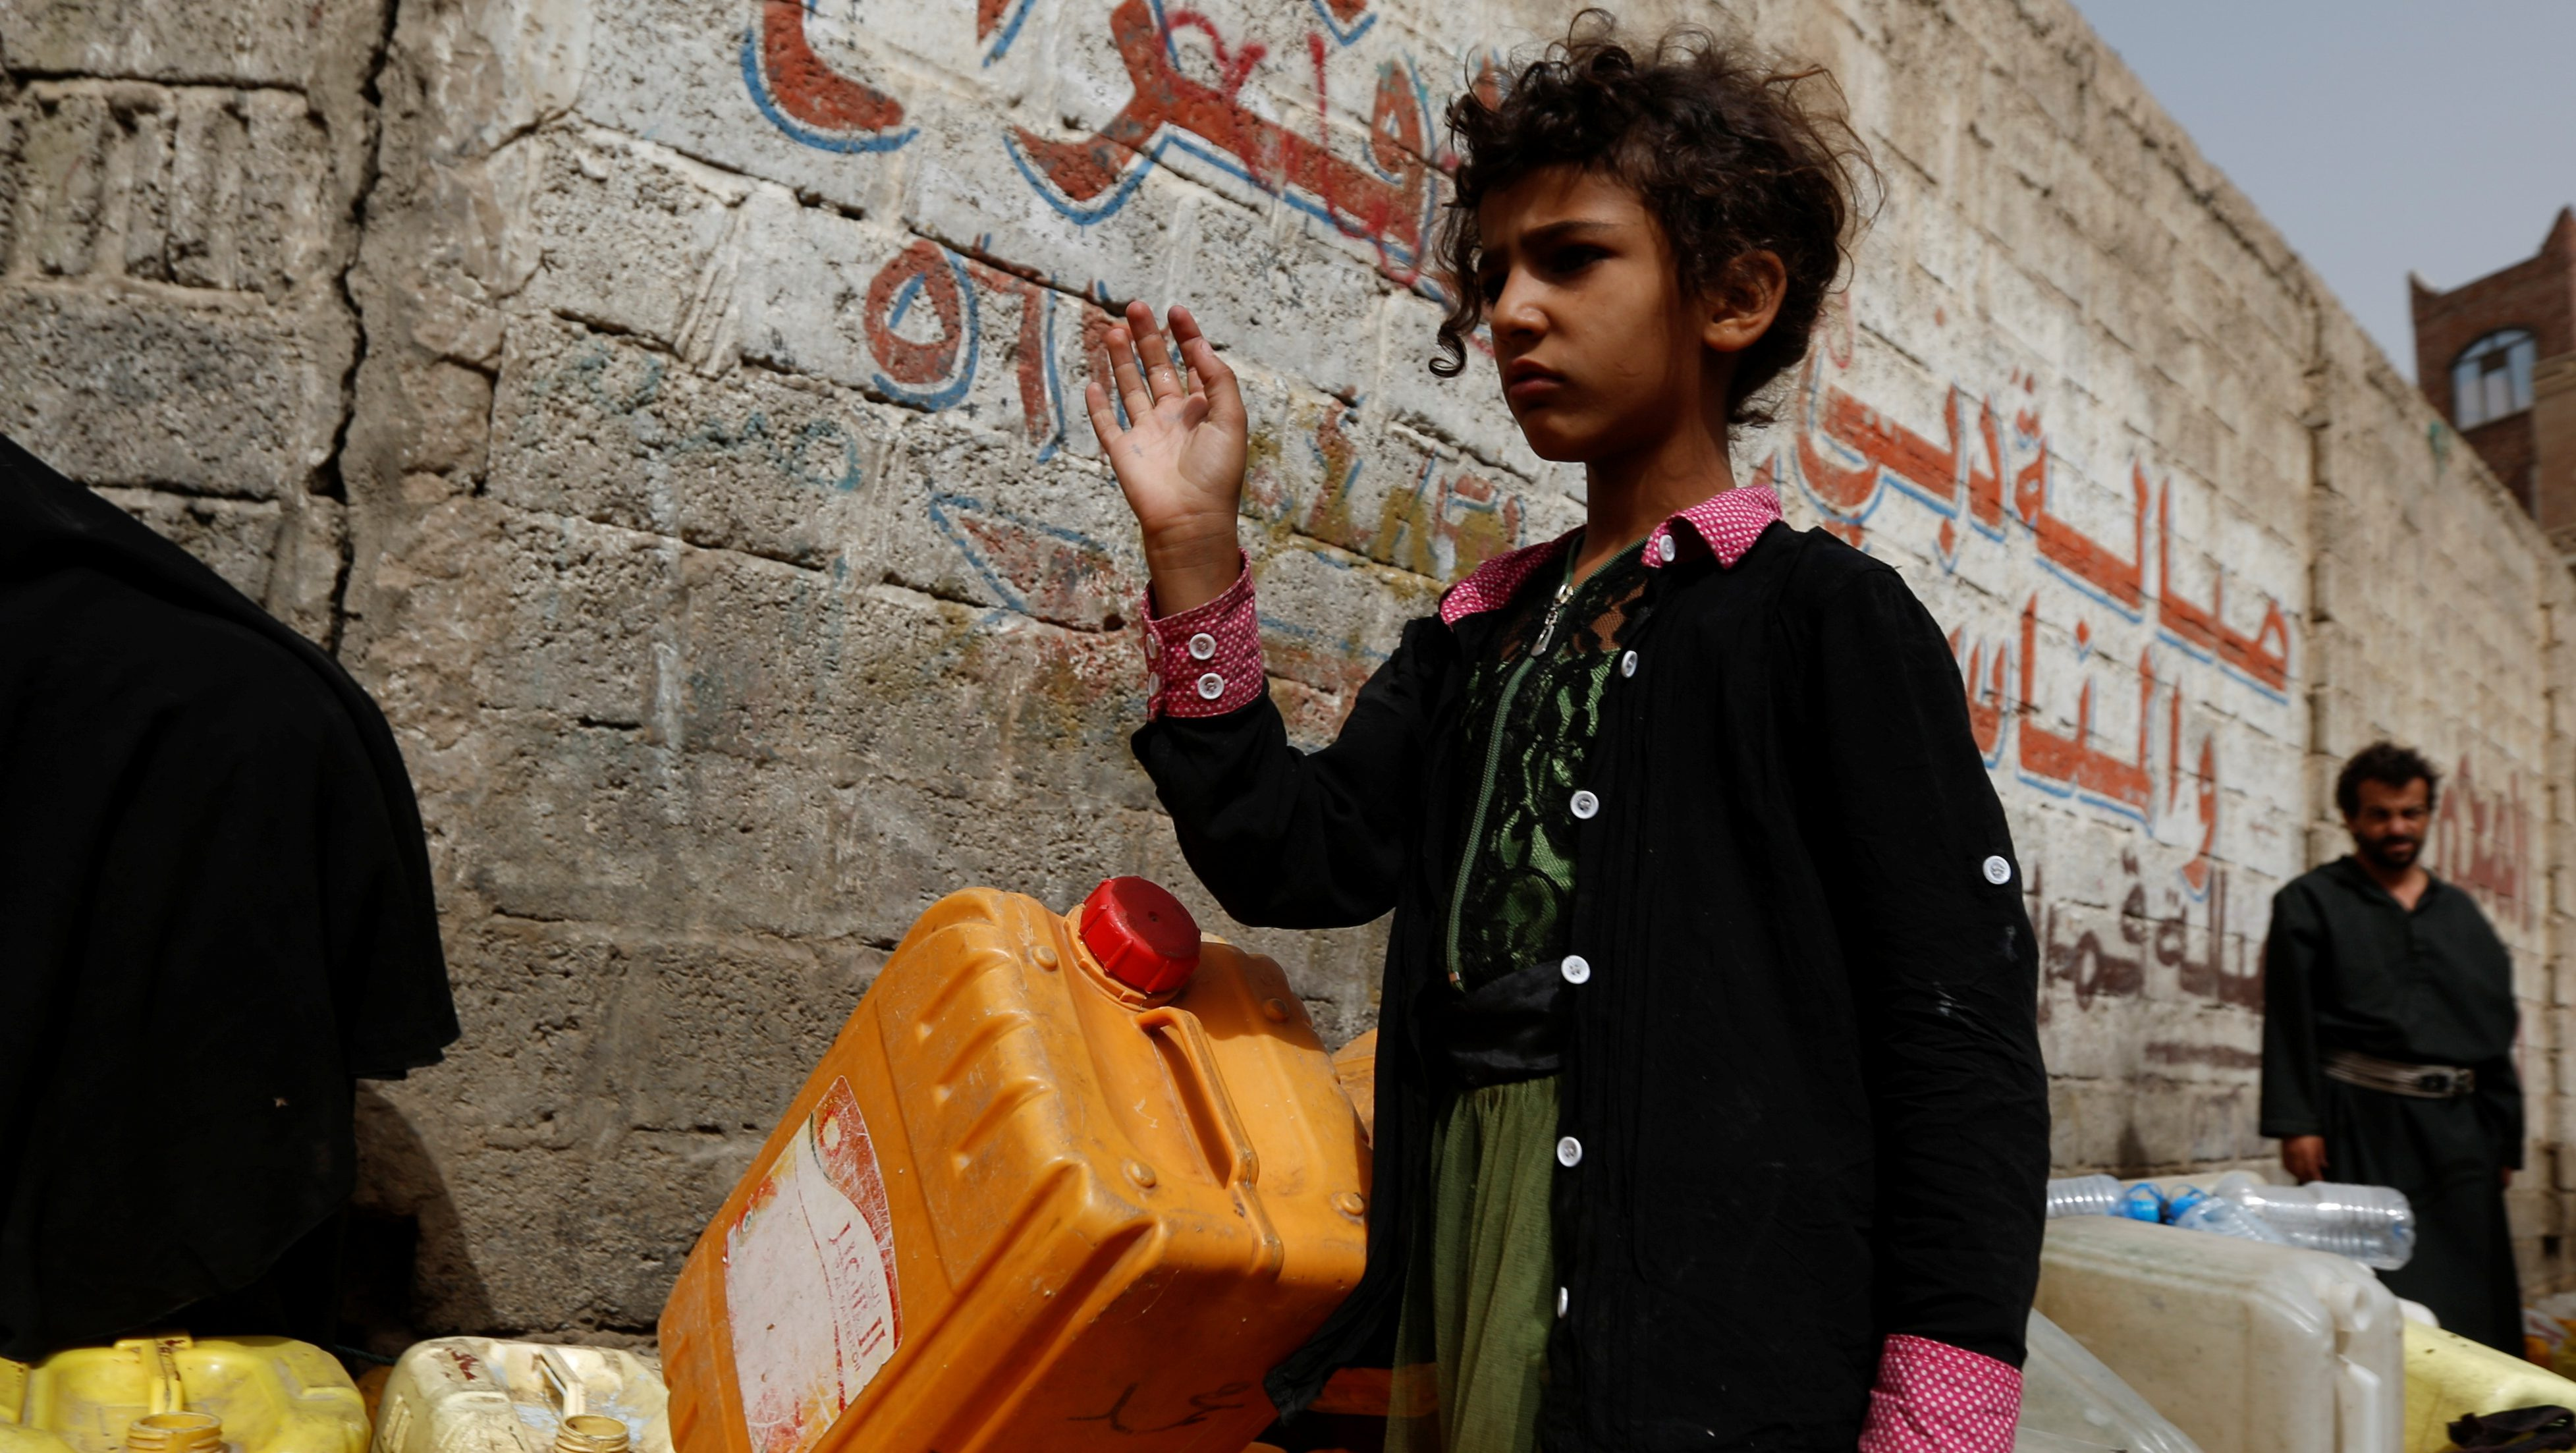 A girl stands by water cans on a street where a charity tanker truck delivers free drinking water in Sanaa, Yemen, July 10, 2017. A  cholera outbreak caused by collapsed water and sanitation systems is growing worse.